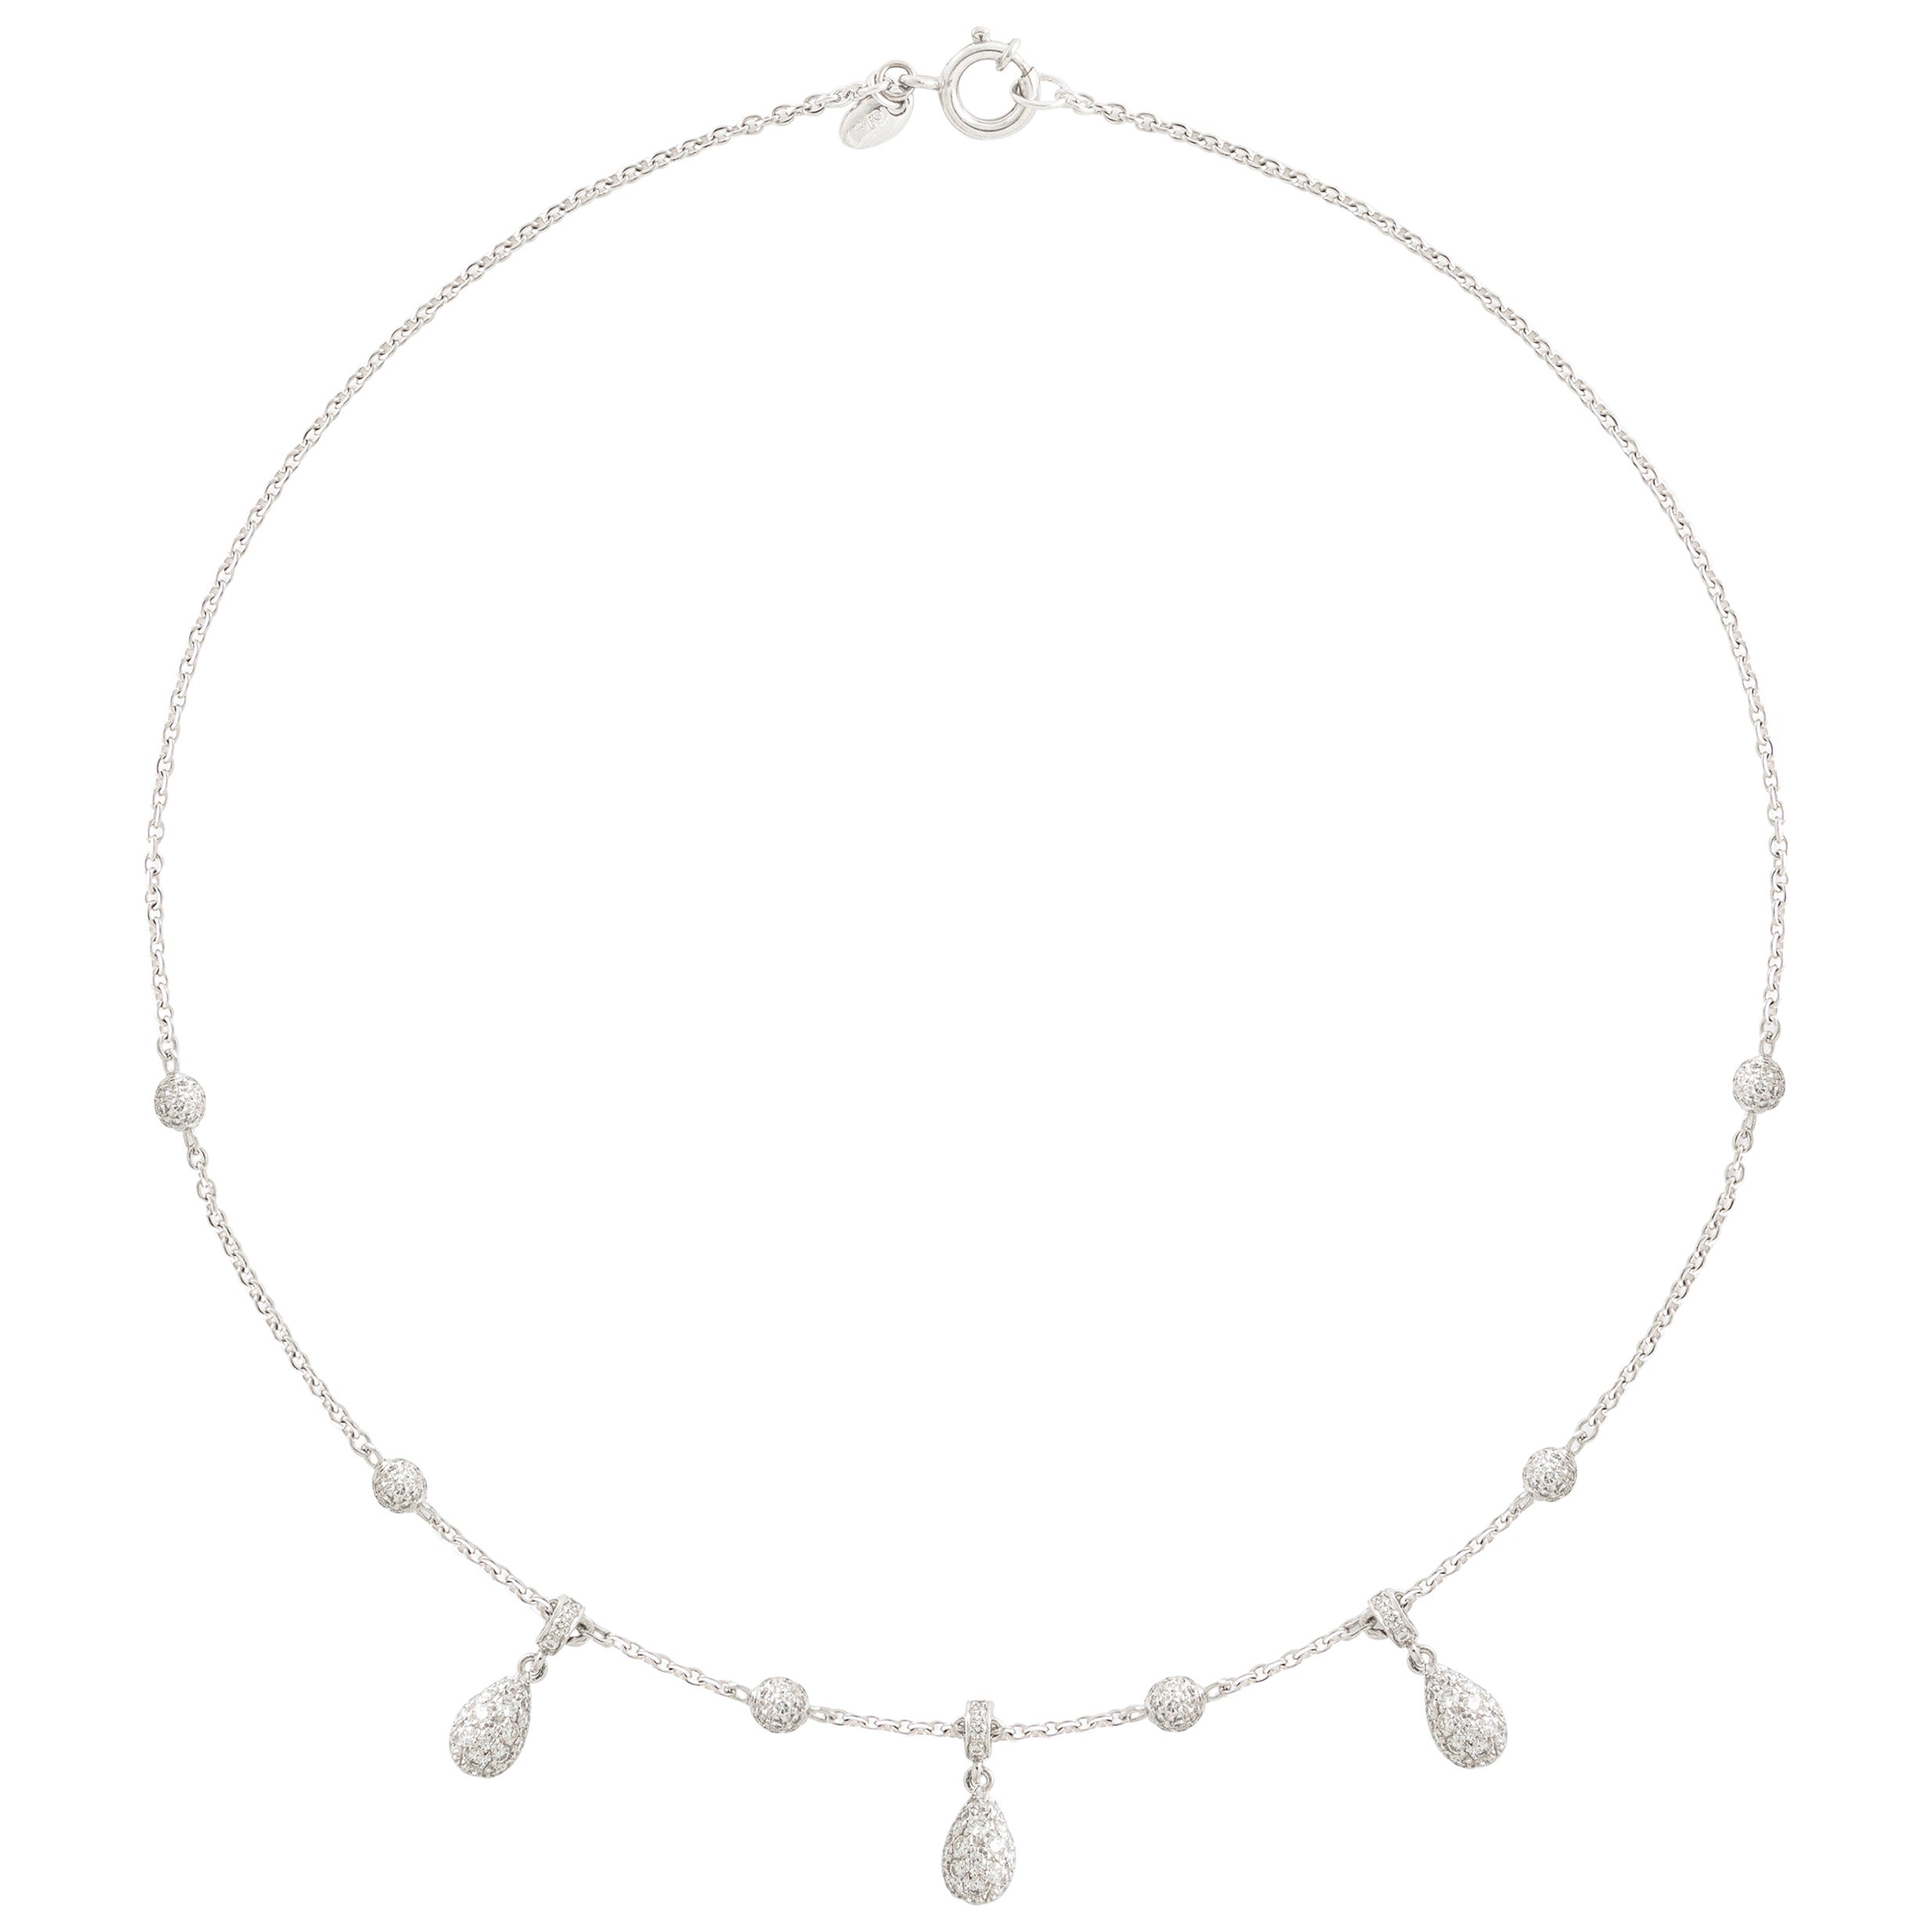 Adler Diamond and White Gold Necklace